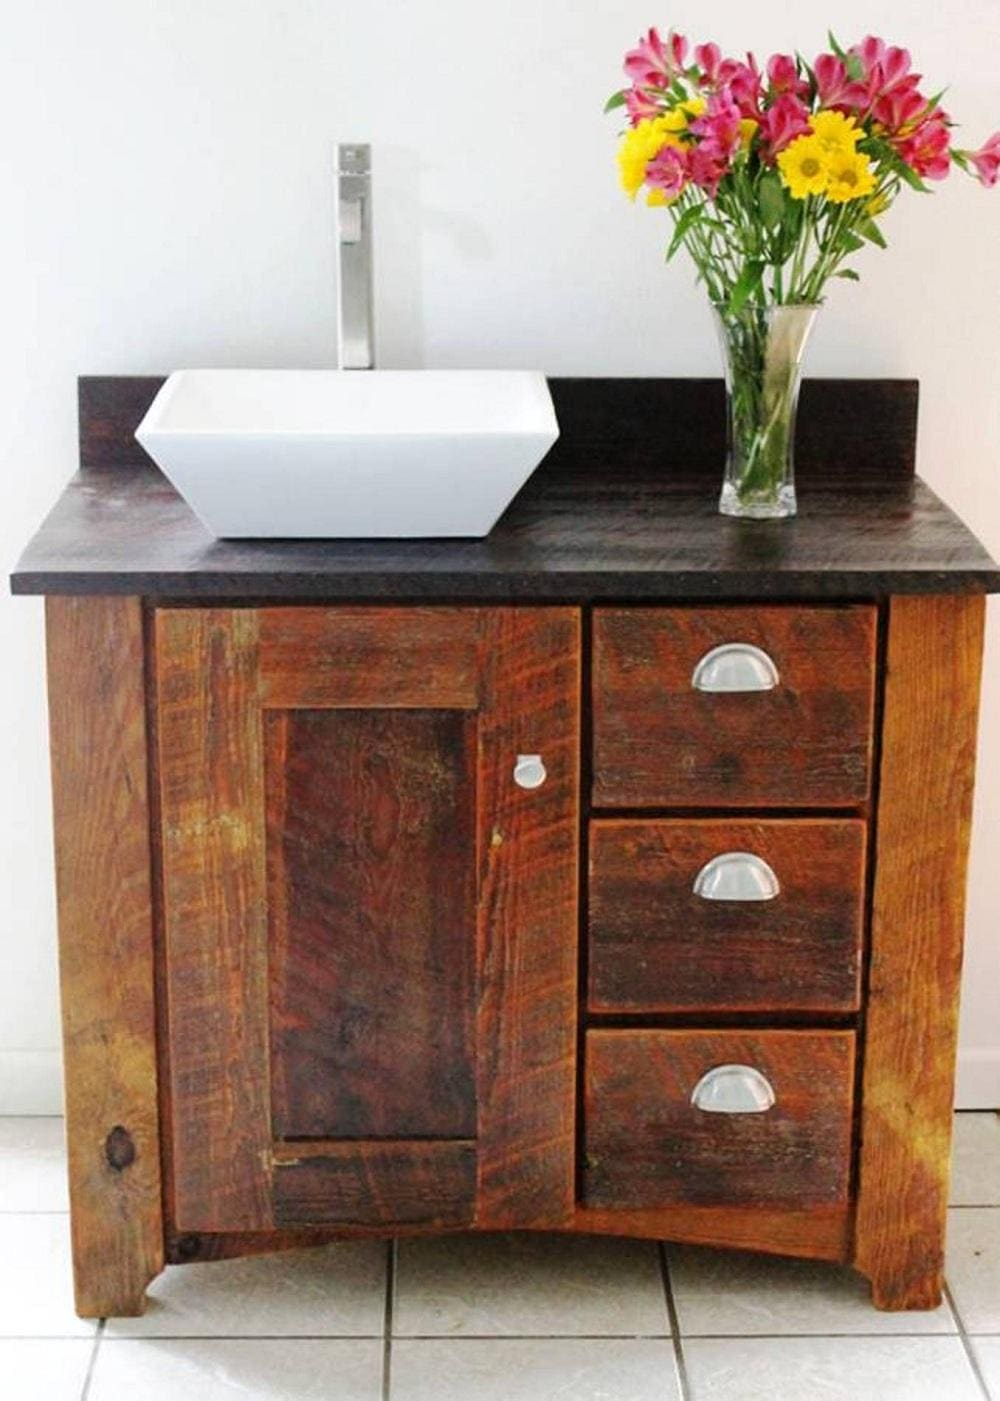 Contemporer Reclaimed Wood Bathroom Vanity